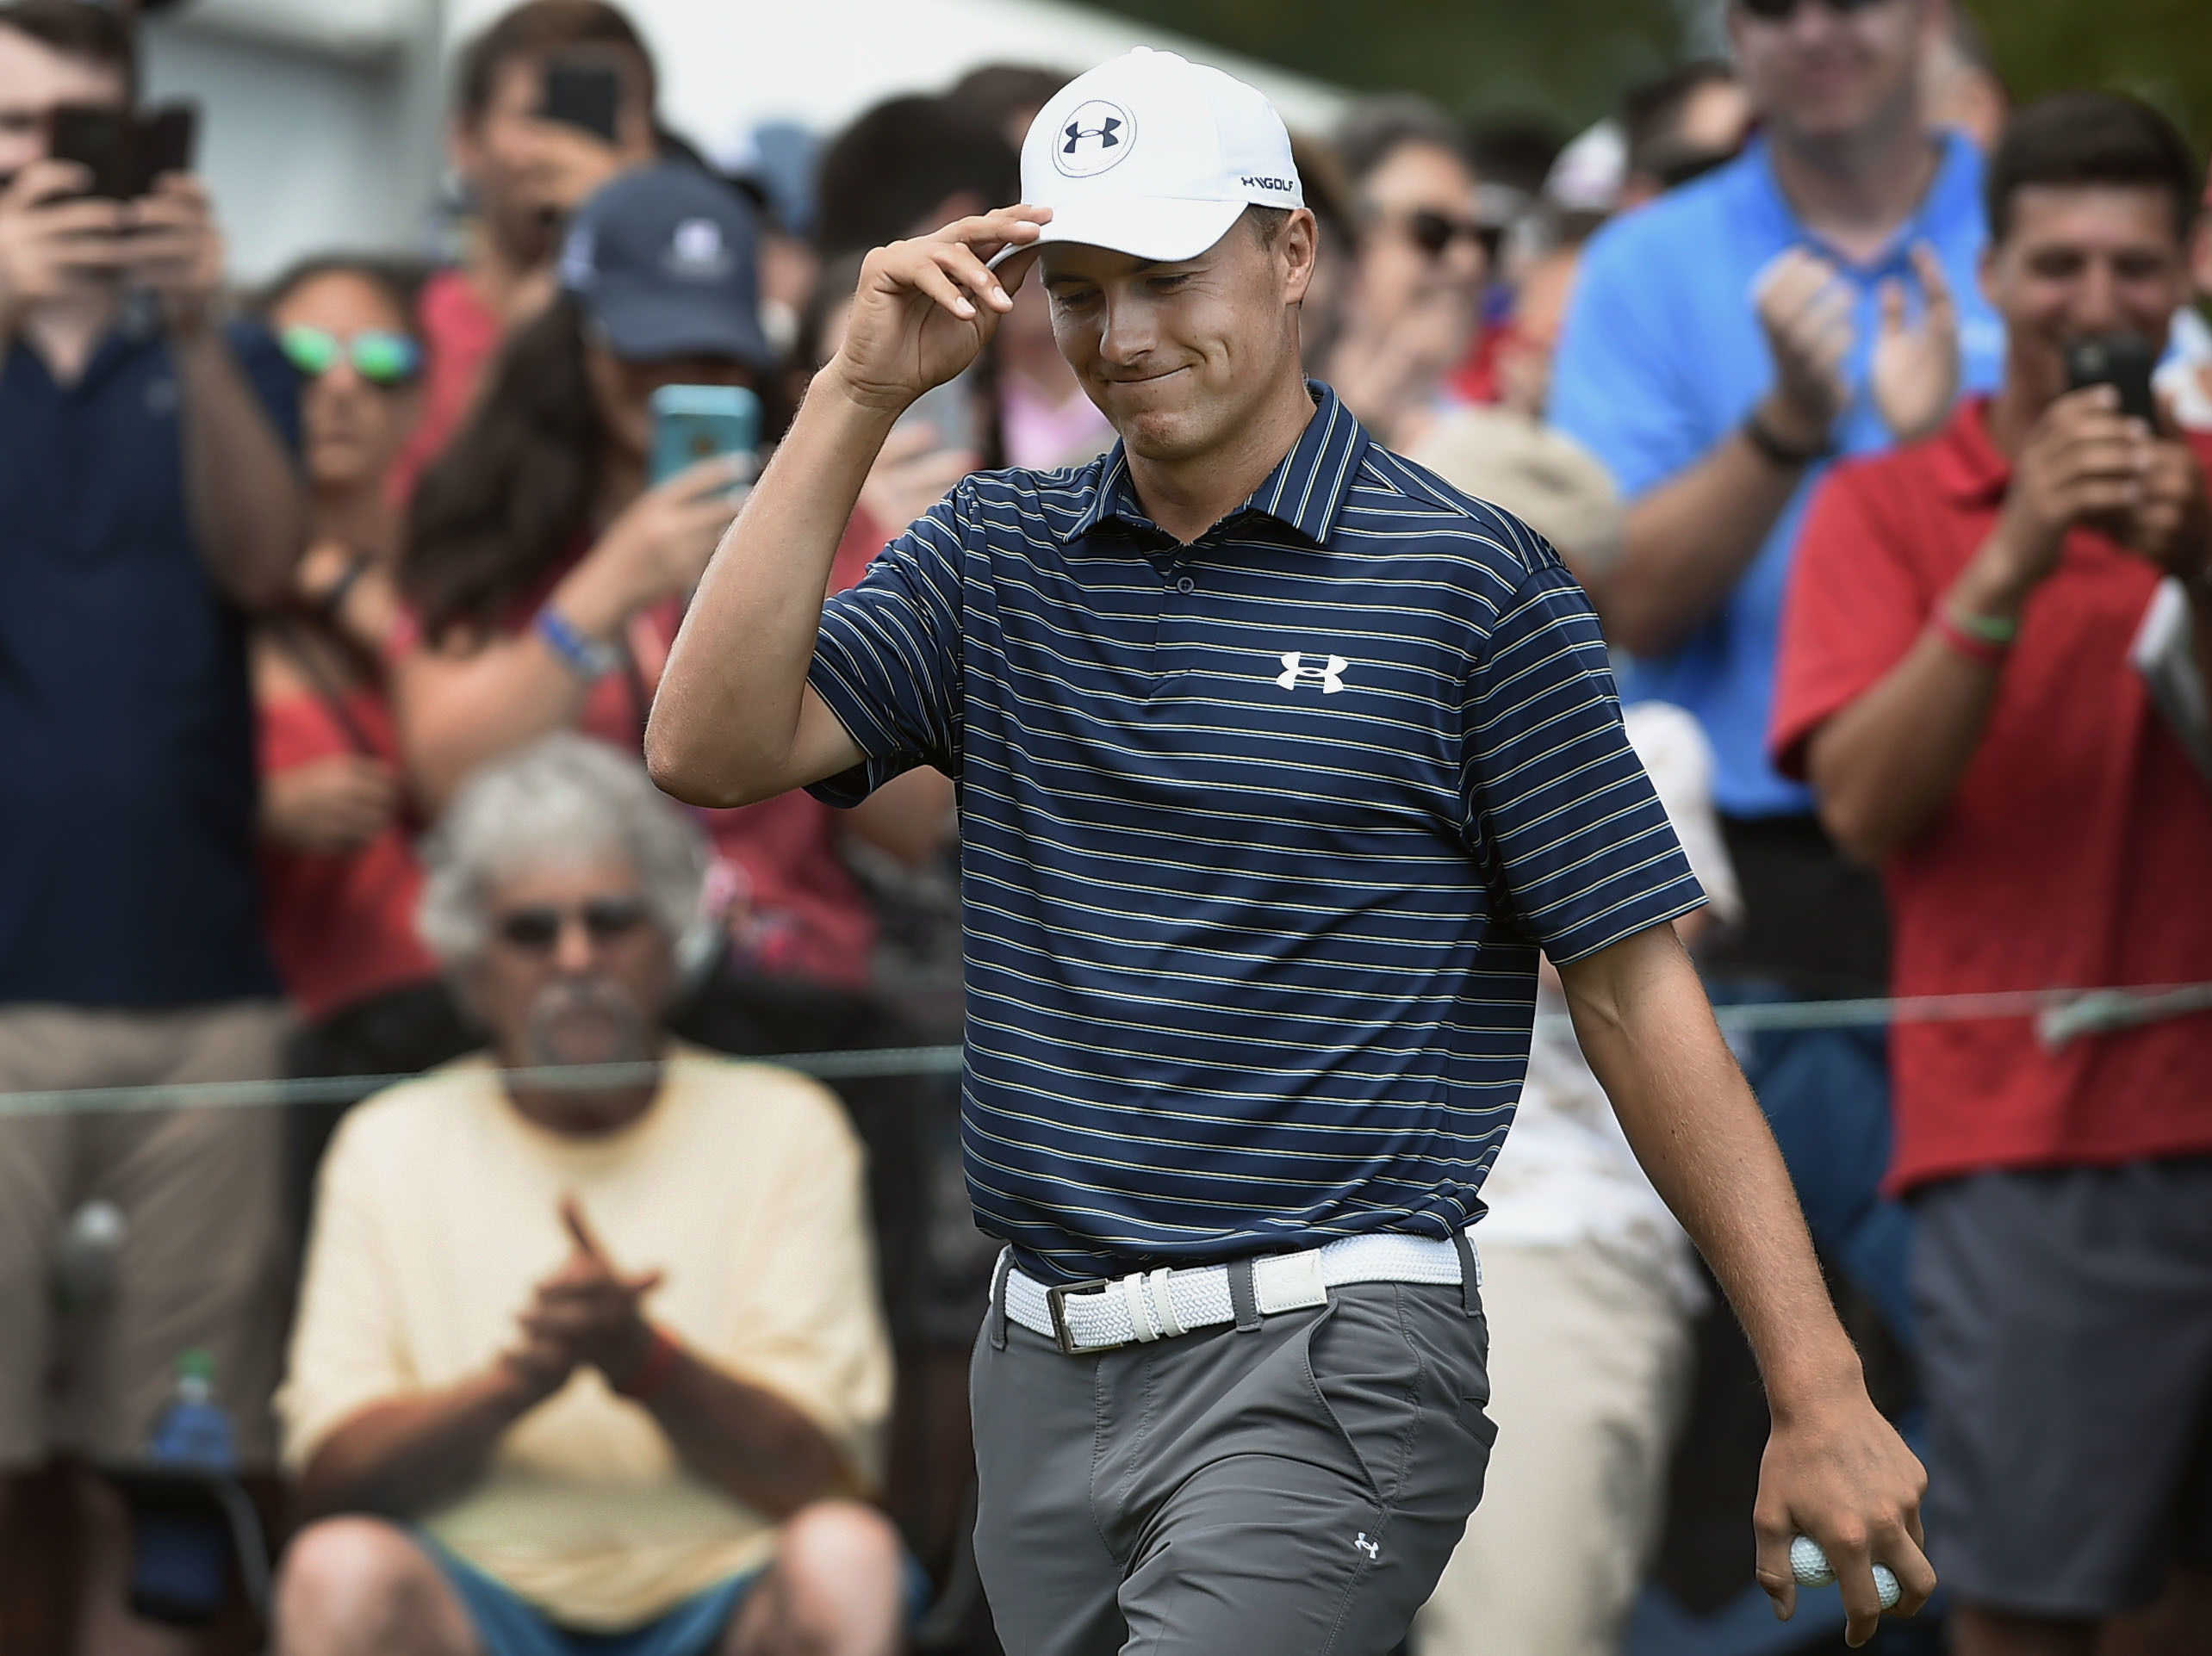 Jordan Spieth tips his hat to fans as he is introduced at the first hole during the final round of the Travelers Championship golf tournament, Sunday, June 25, 2017, in Cromwell, Conn. (AP Photo/Jessica Hill)